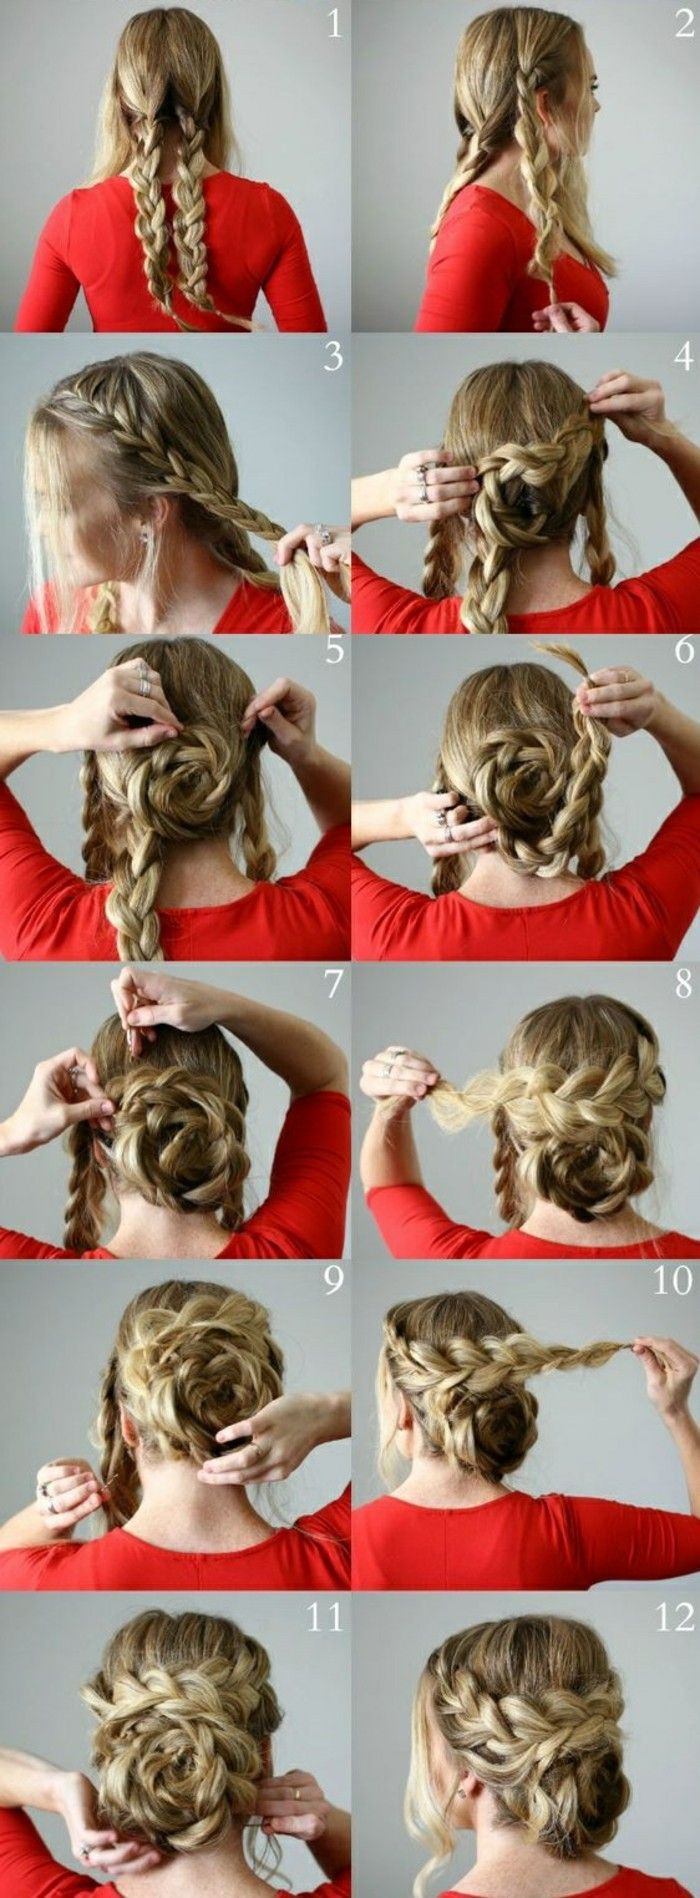 make updos yourself: 58 instructions for effective